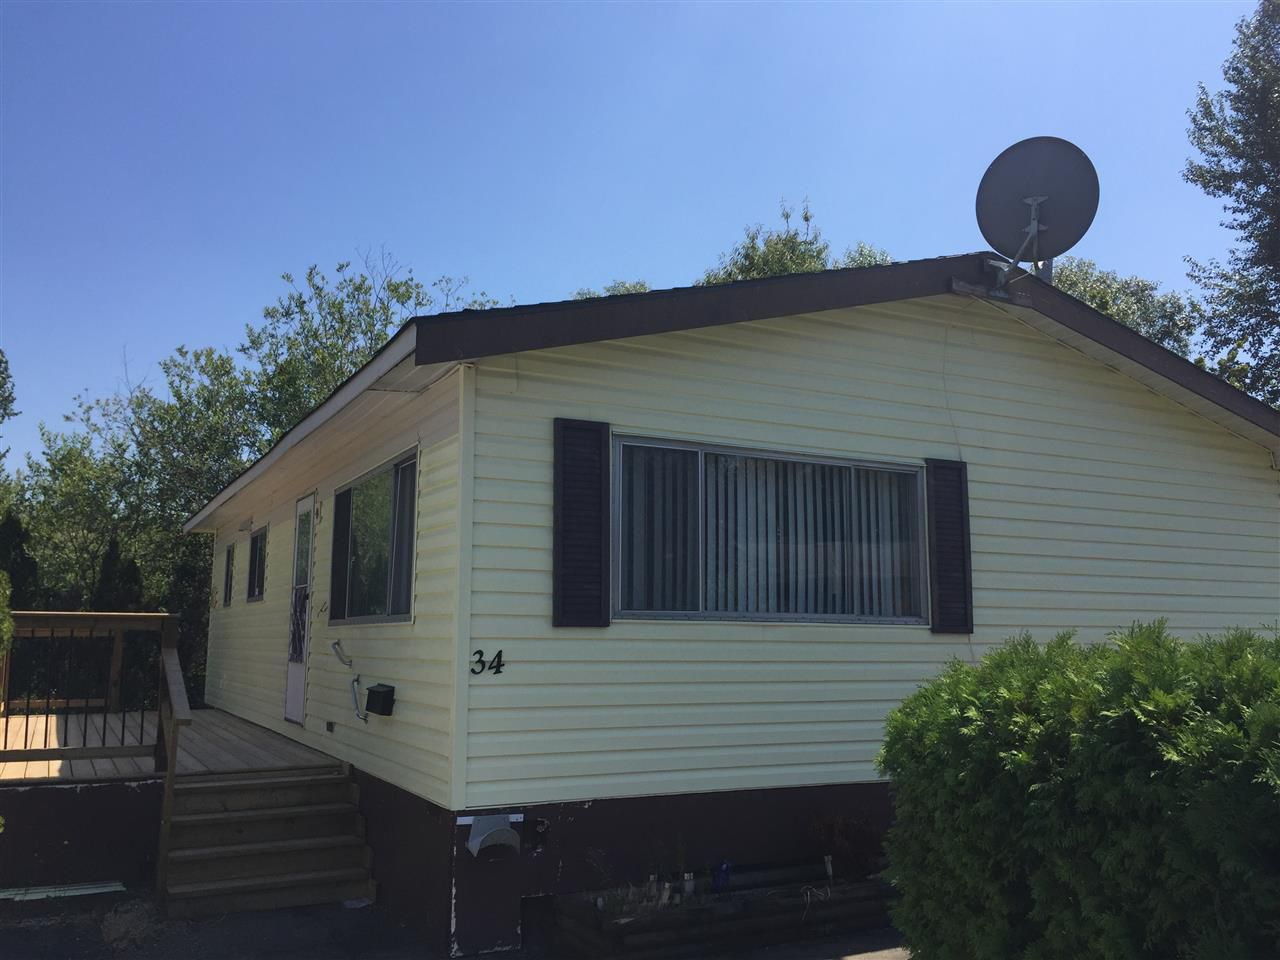 """Main Photo: 34 3300 HORN Street in Abbotsford: Central Abbotsford Manufactured Home for sale in """"GEORGIAN PARK"""" : MLS®# R2191979"""